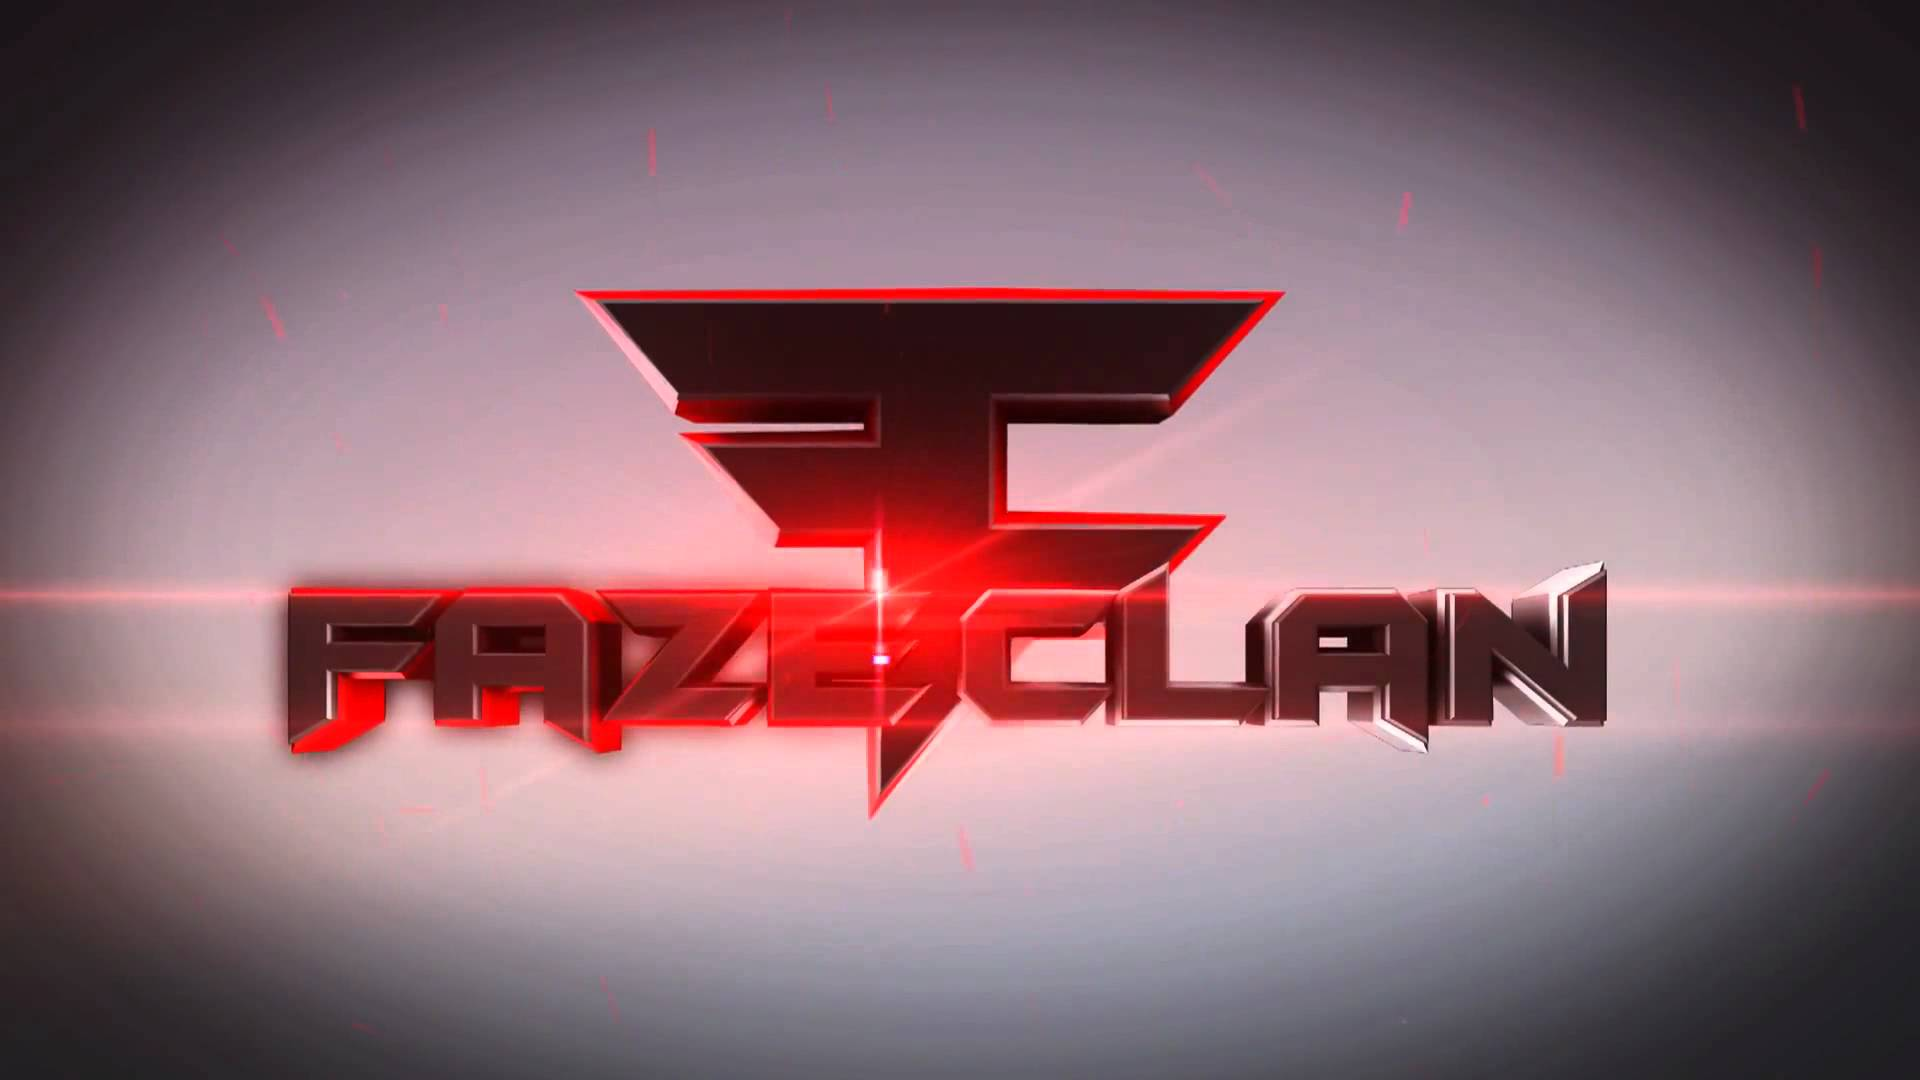 Faze Clan Wallpapers Wallpaper Cave